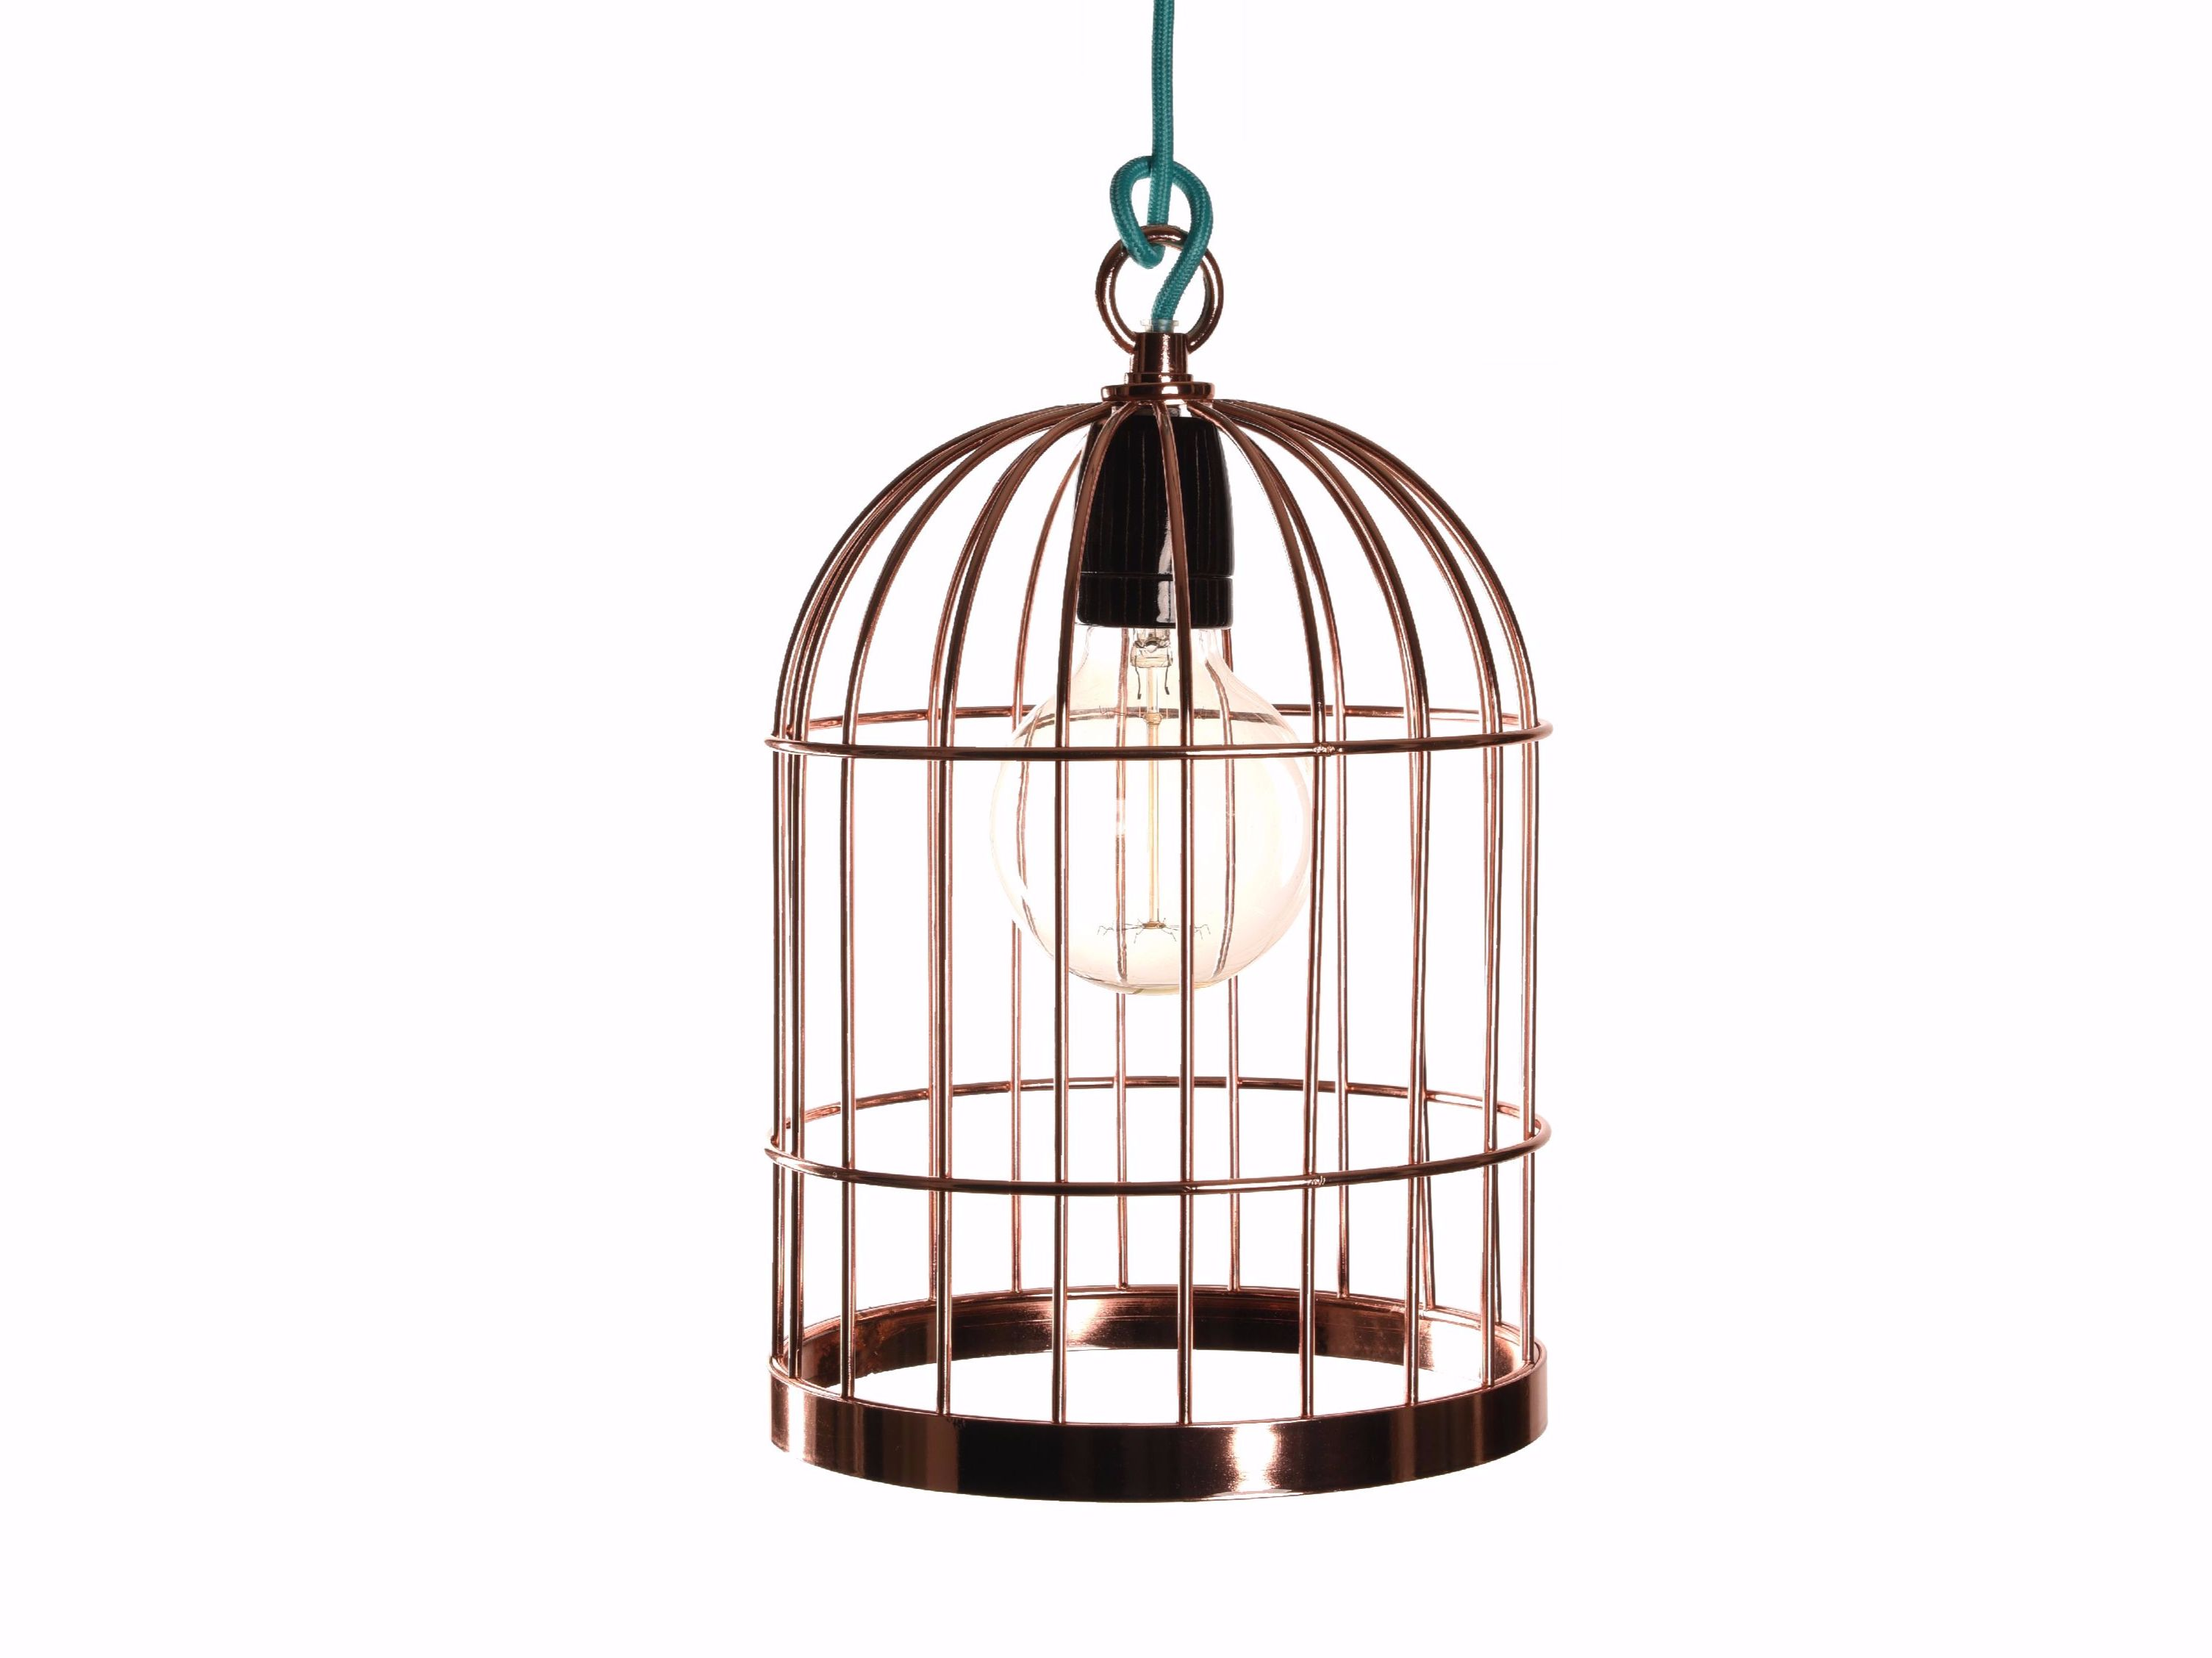 Bird cage copper cable black explore lamp table bird cages and more geotapseo Image collections